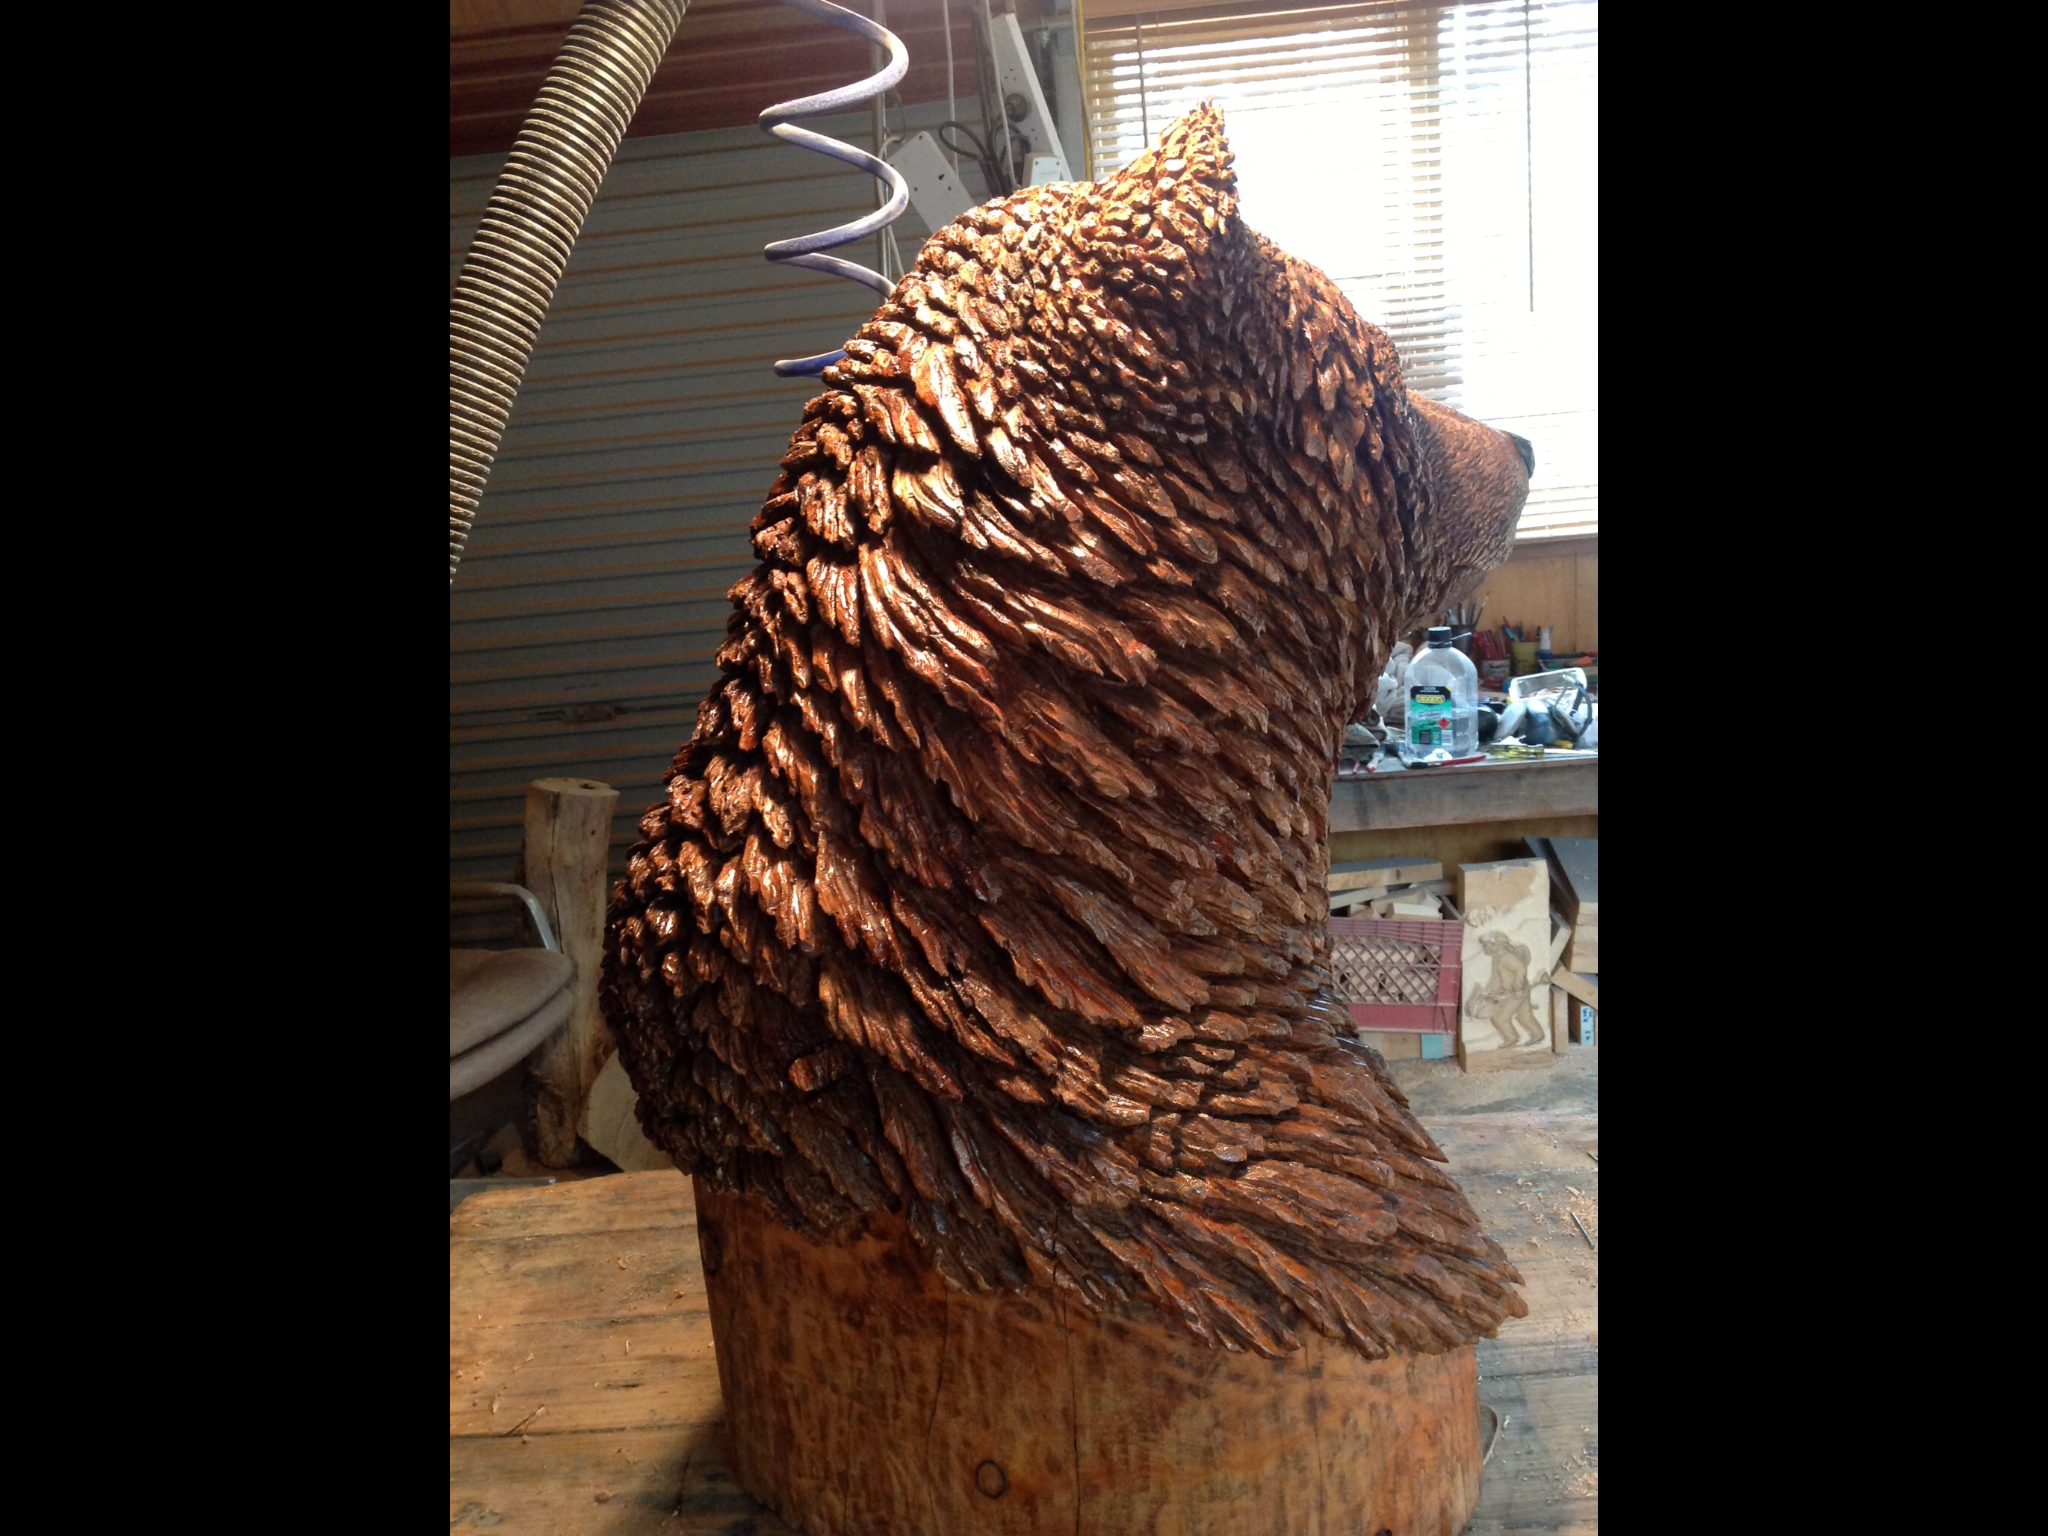 BIG GRIZZLY SIDE VIEW